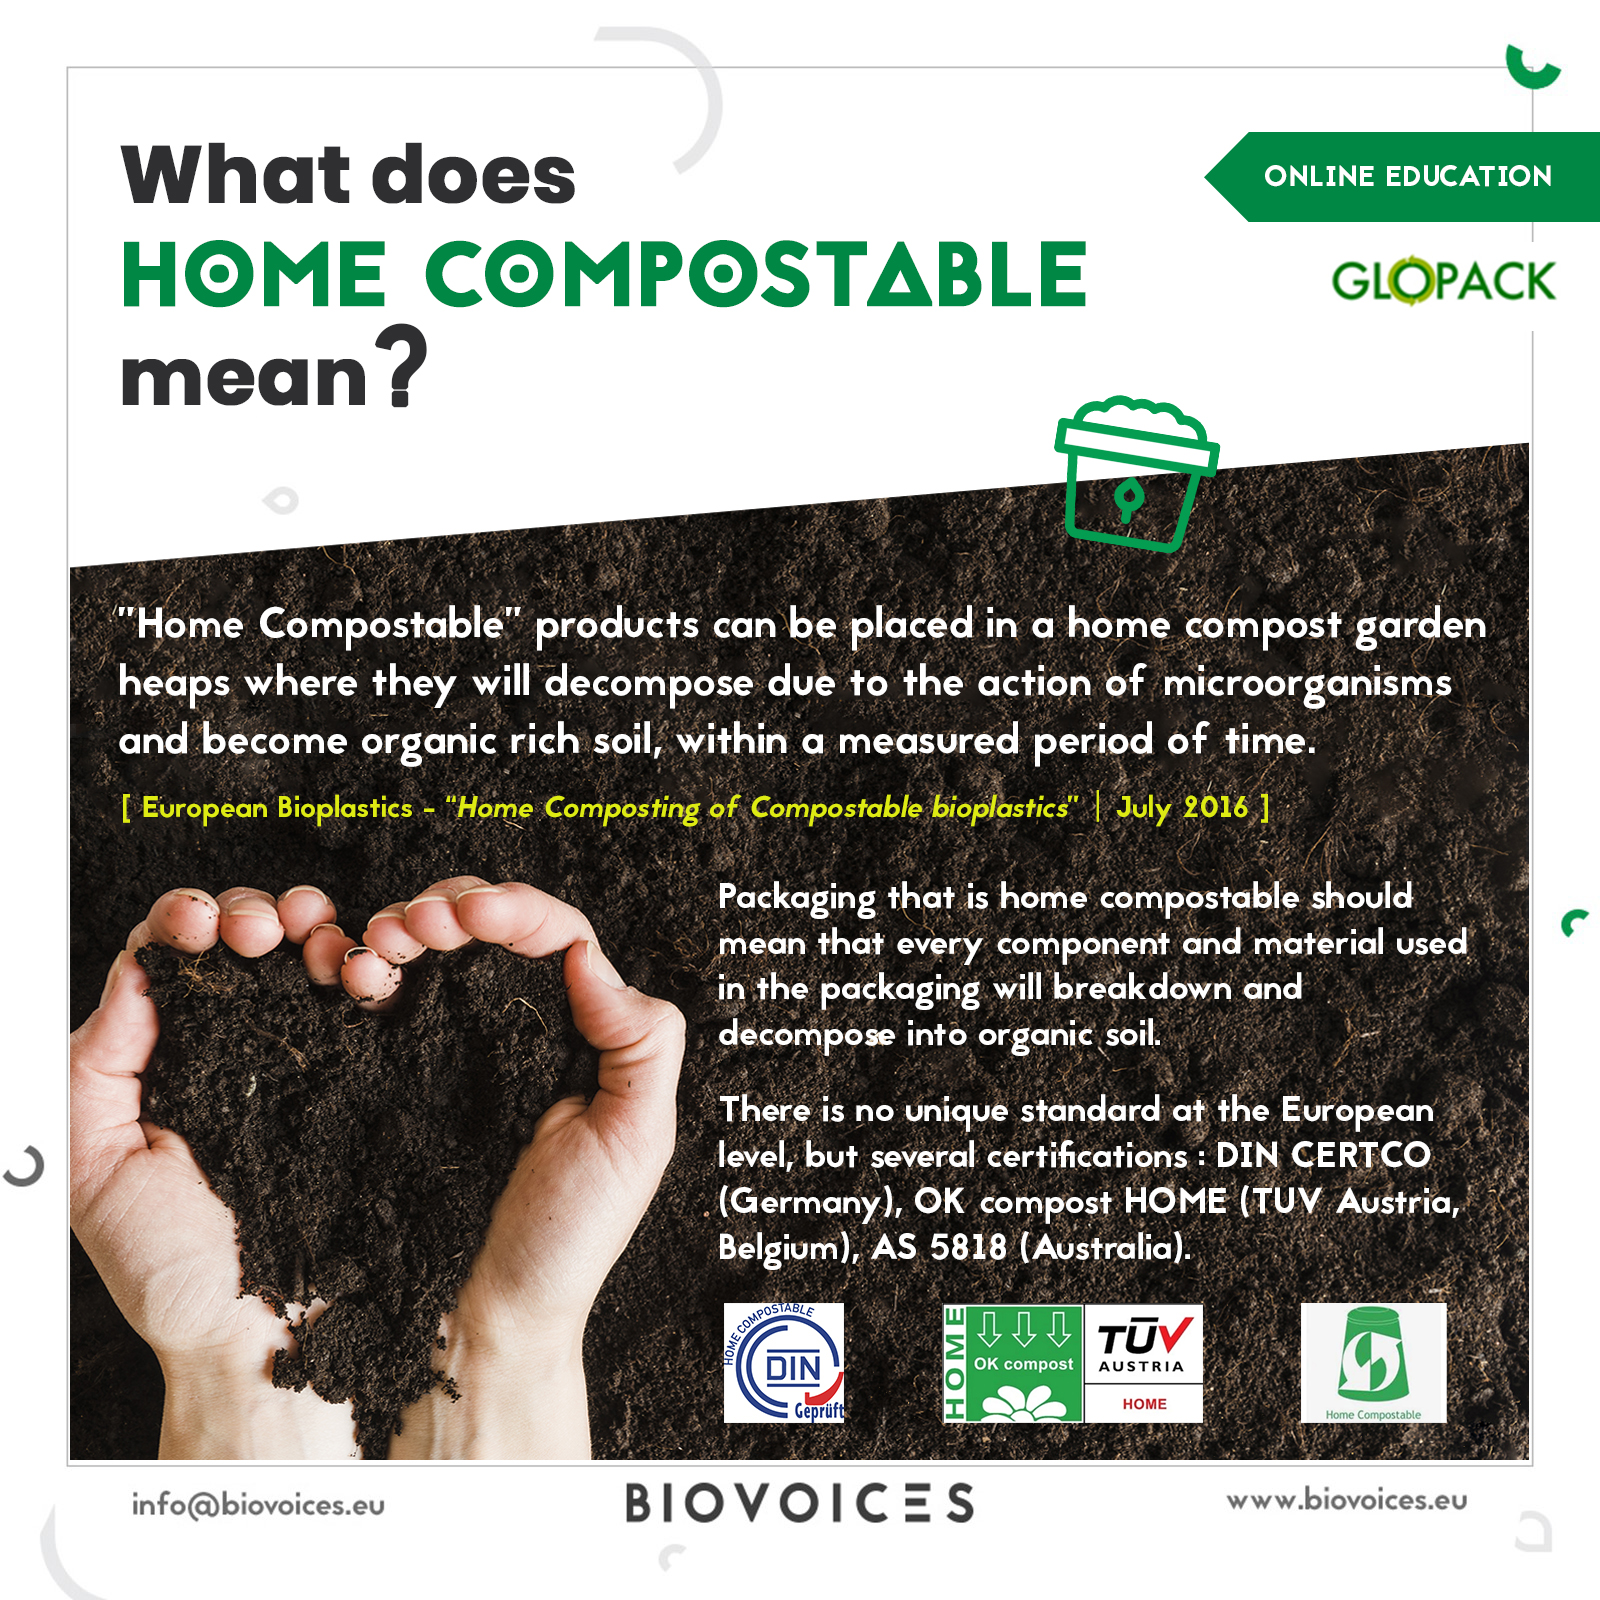 What does home compostable mean?